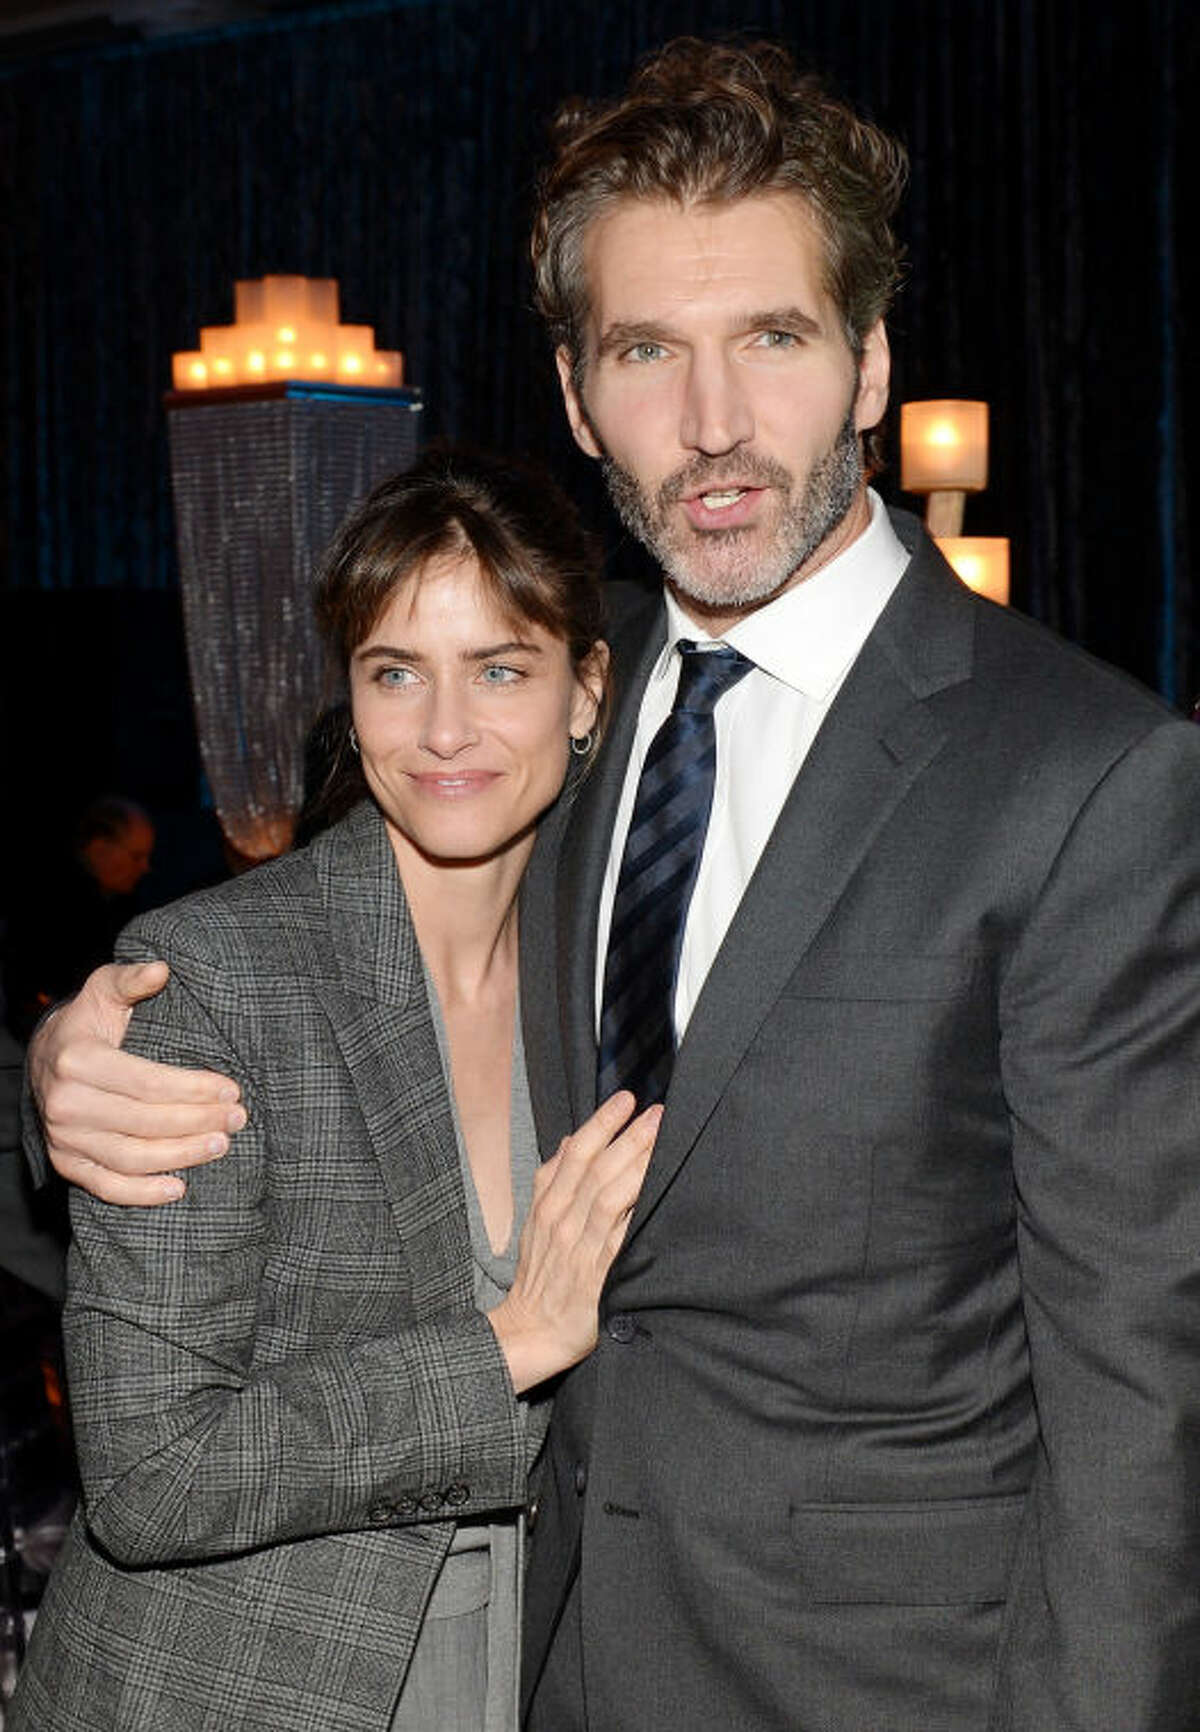 """Actress Amanda Peet with husband creator and executive producer David Benioff attend HBO's """"Game of Thrones"""" fourth season premiere party at the Museum of Natural History on Tuesday, March 18, 2014 in New York. (Photo by Evan Agostini/Invision/AP)"""